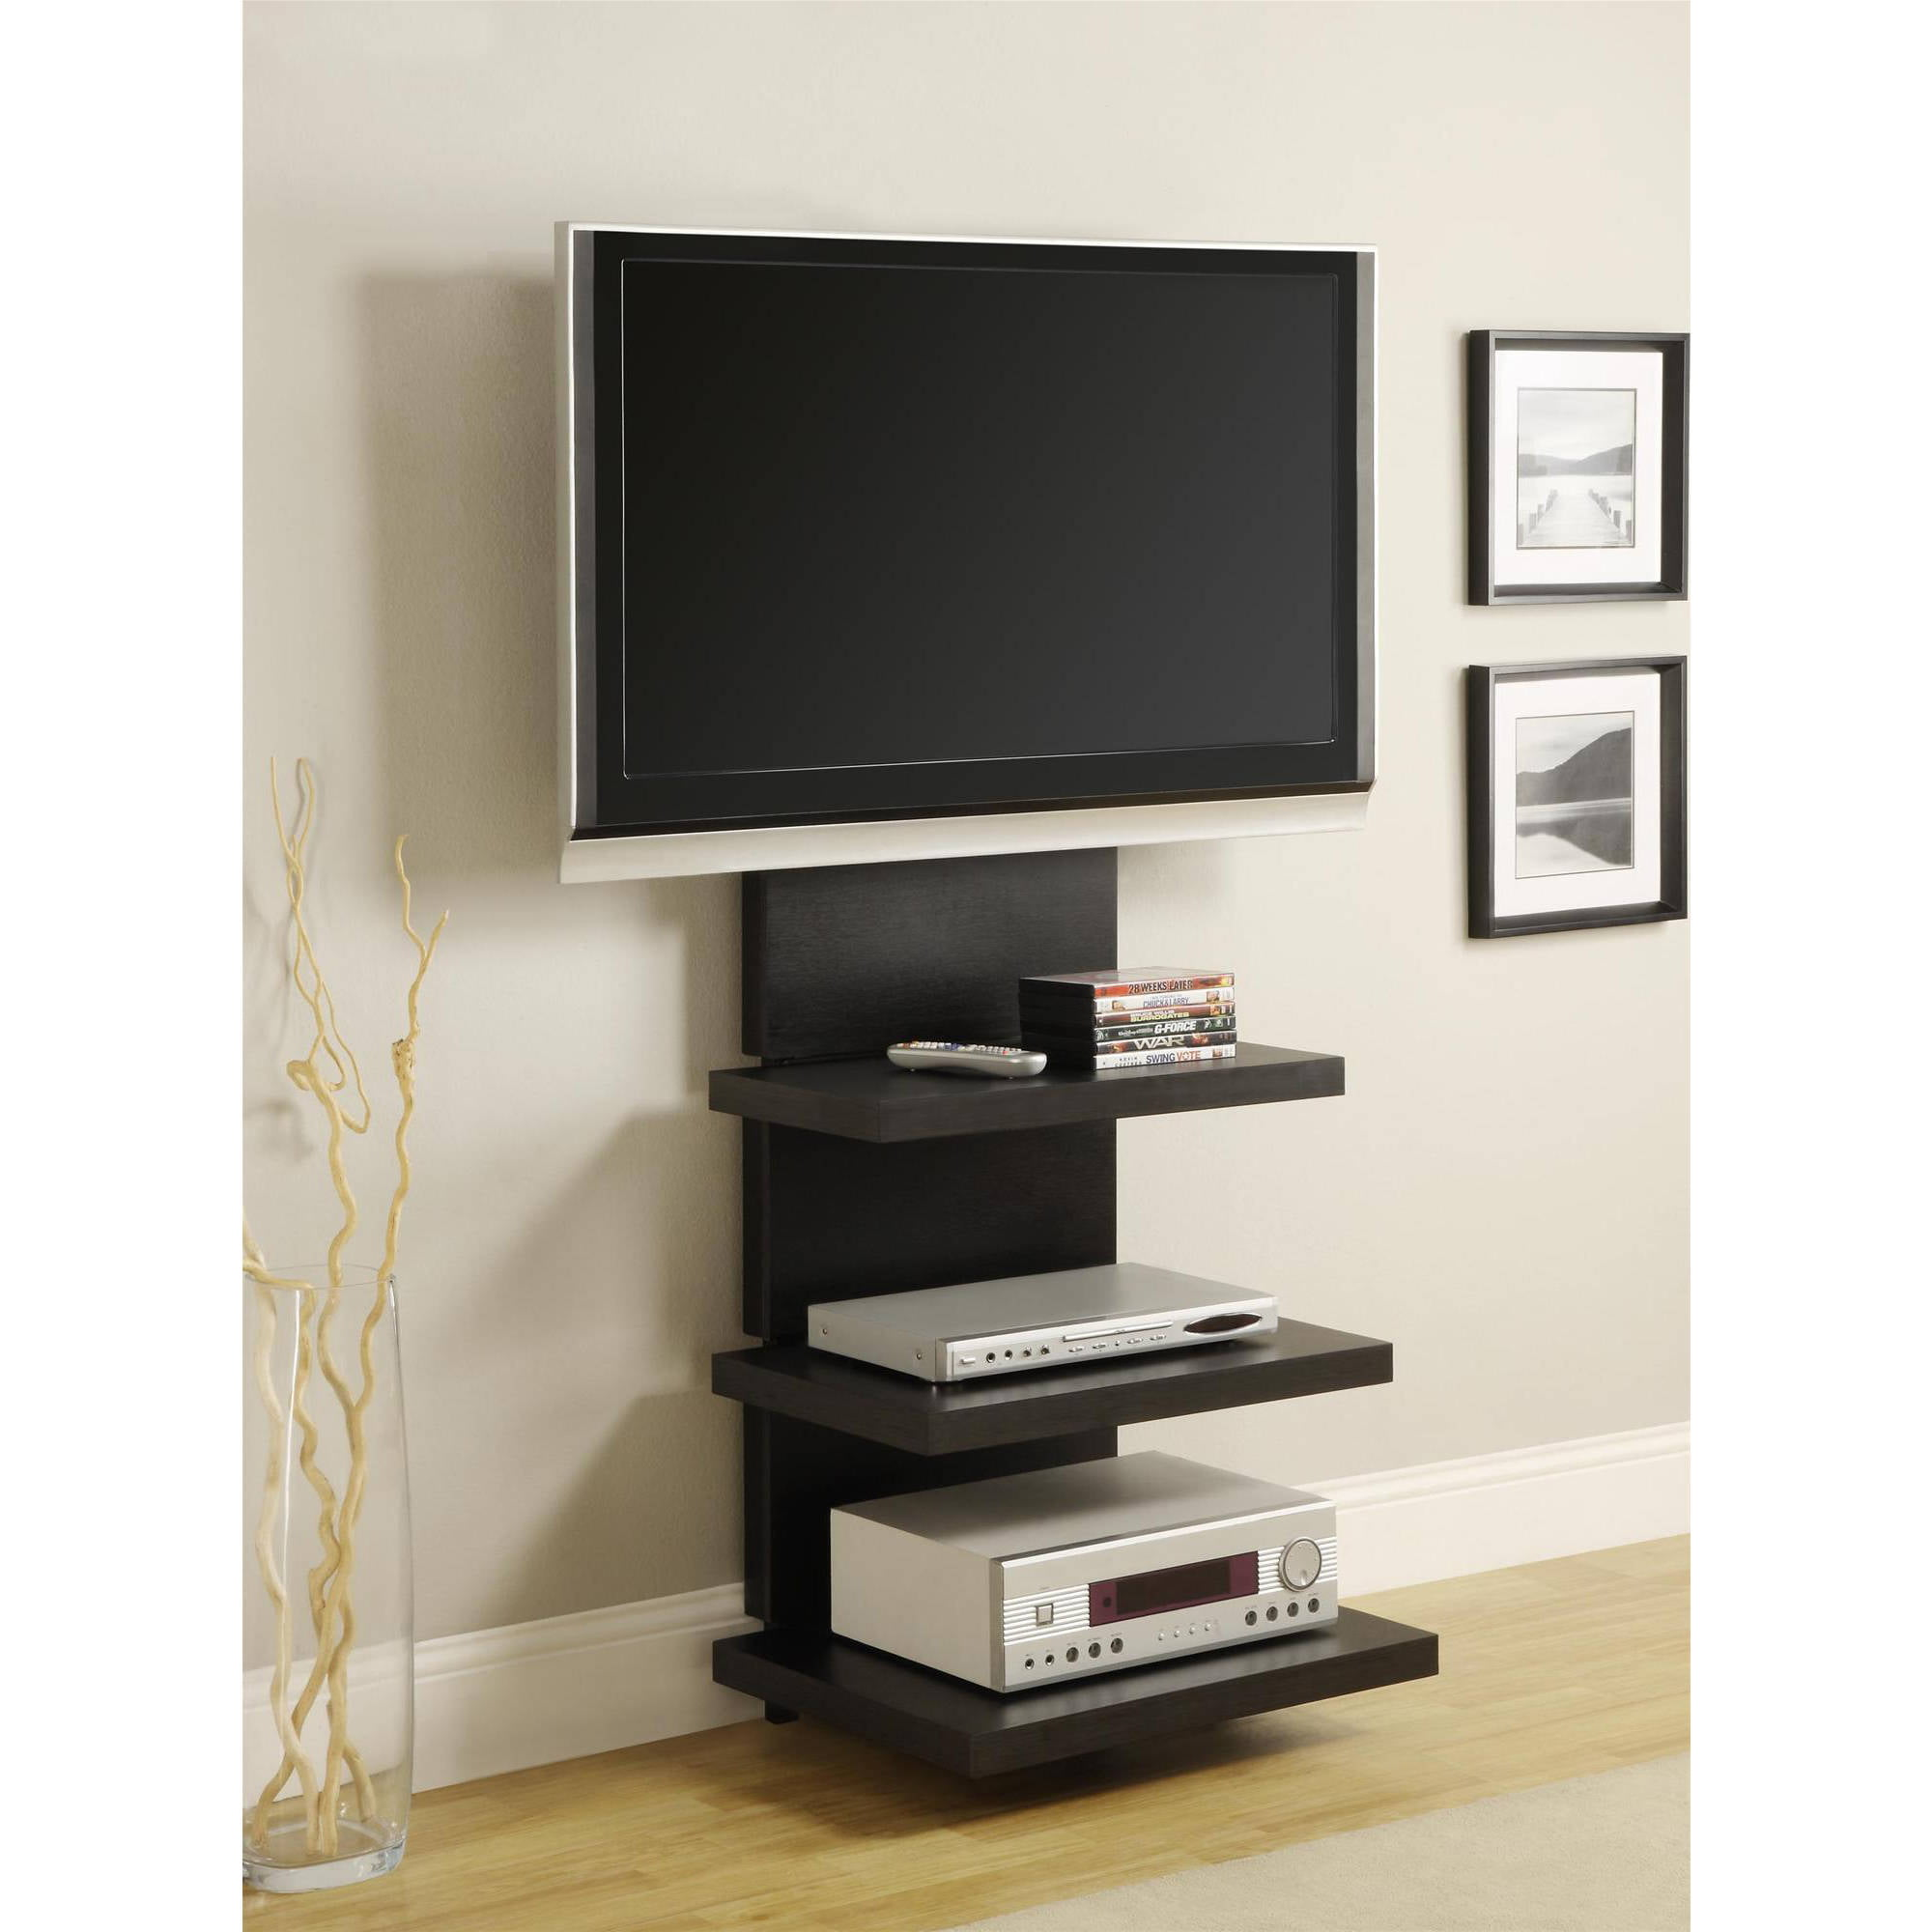 Ameriwood Home Elevation Altramount Tv Stand For Tvs Up To 60 Wide Black